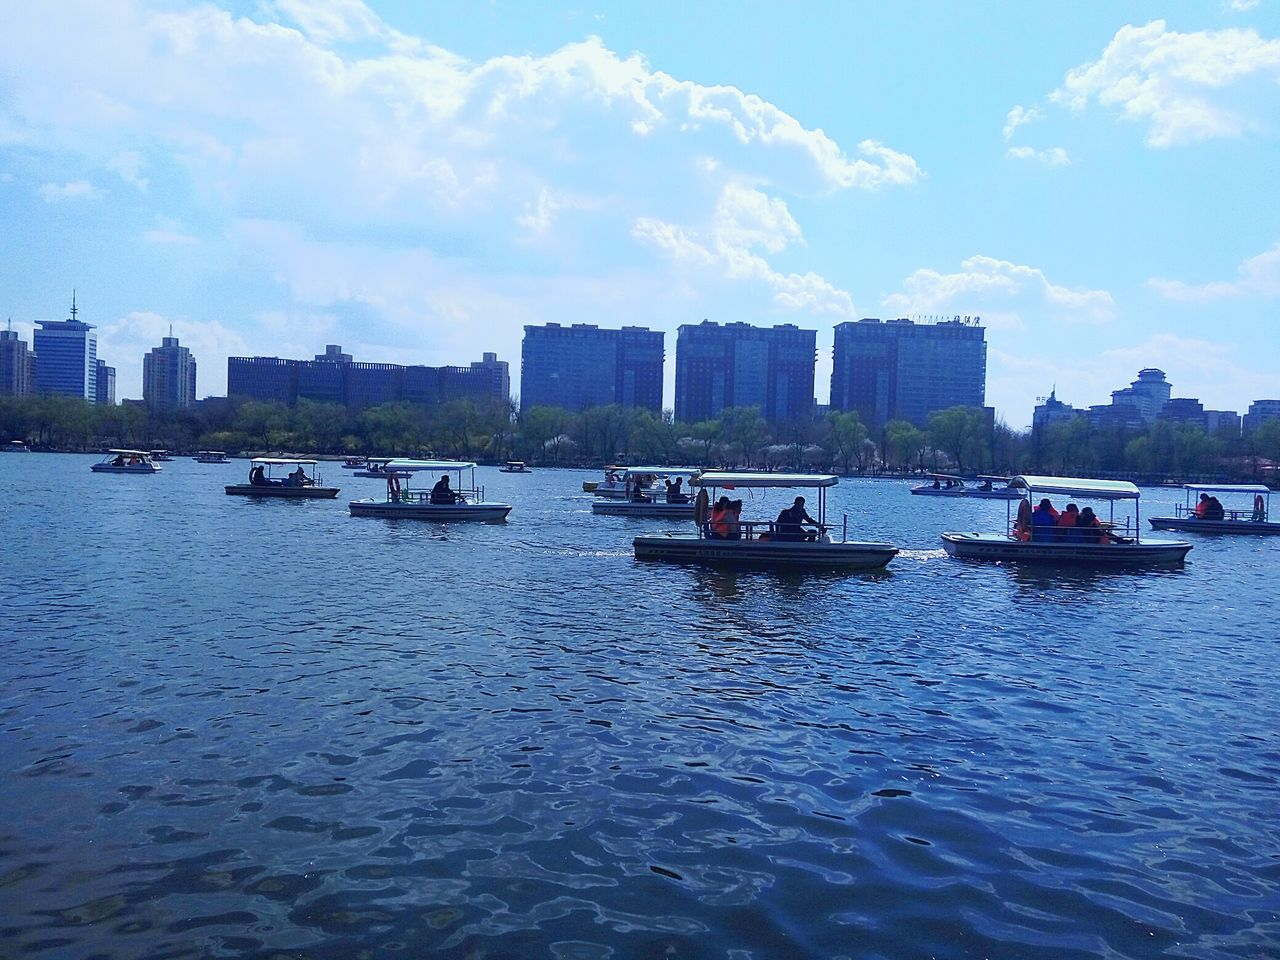 Nautical Vessel Transportation Travel Destinations Outdoors Rippled Mode Of Transport City Water Cloud - Sky No People Moored Sailing Sky Urban Skyline Day Harbor Architecture Beauty In Nature Pedal Boat